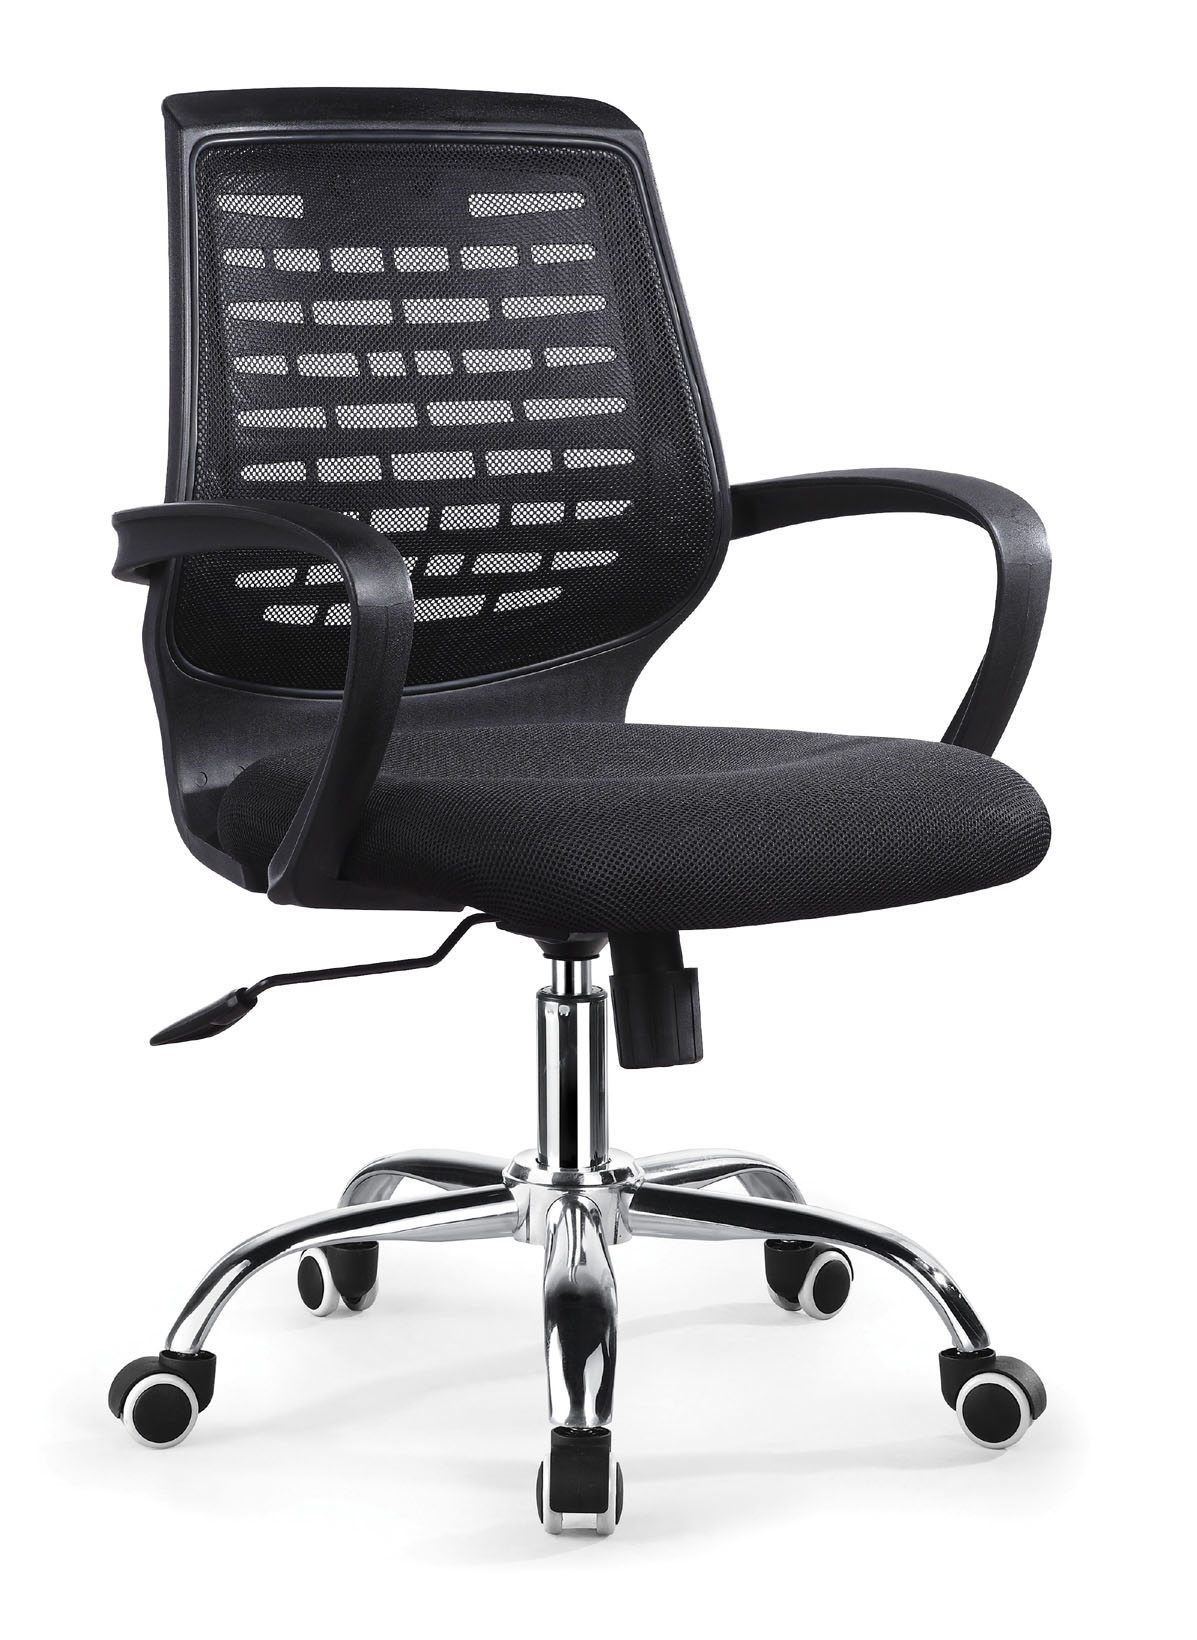 Buy Zhsmc 07p Swivel Office Chair With Colored Painted